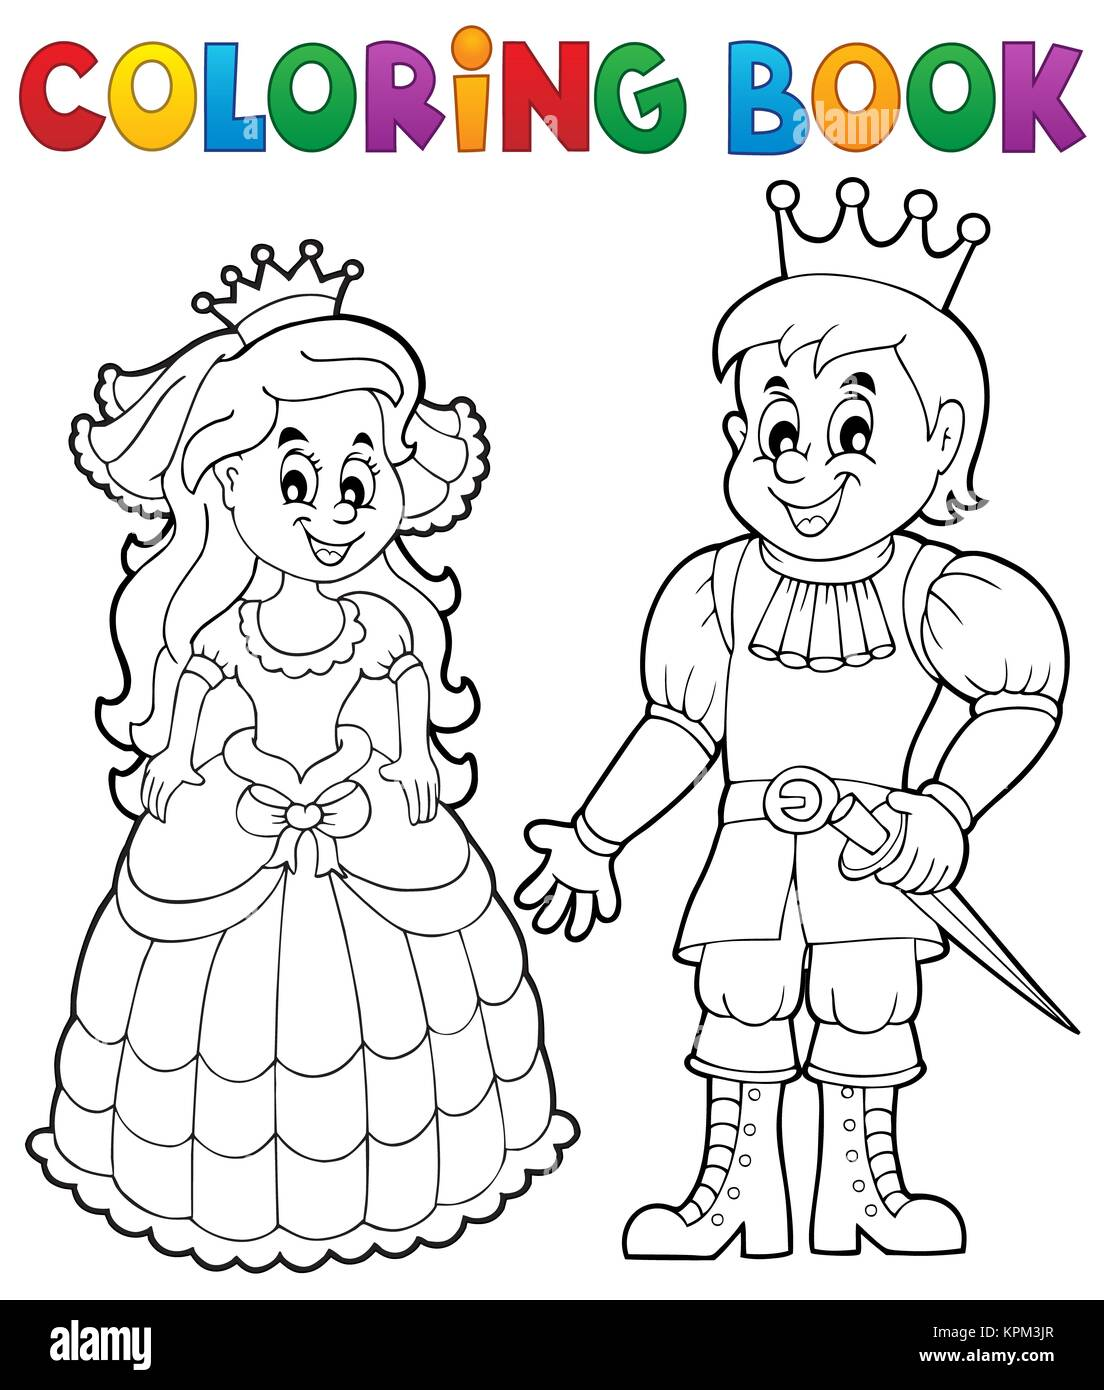 Coloring Book Princess And Prince Stock Photo Alamy